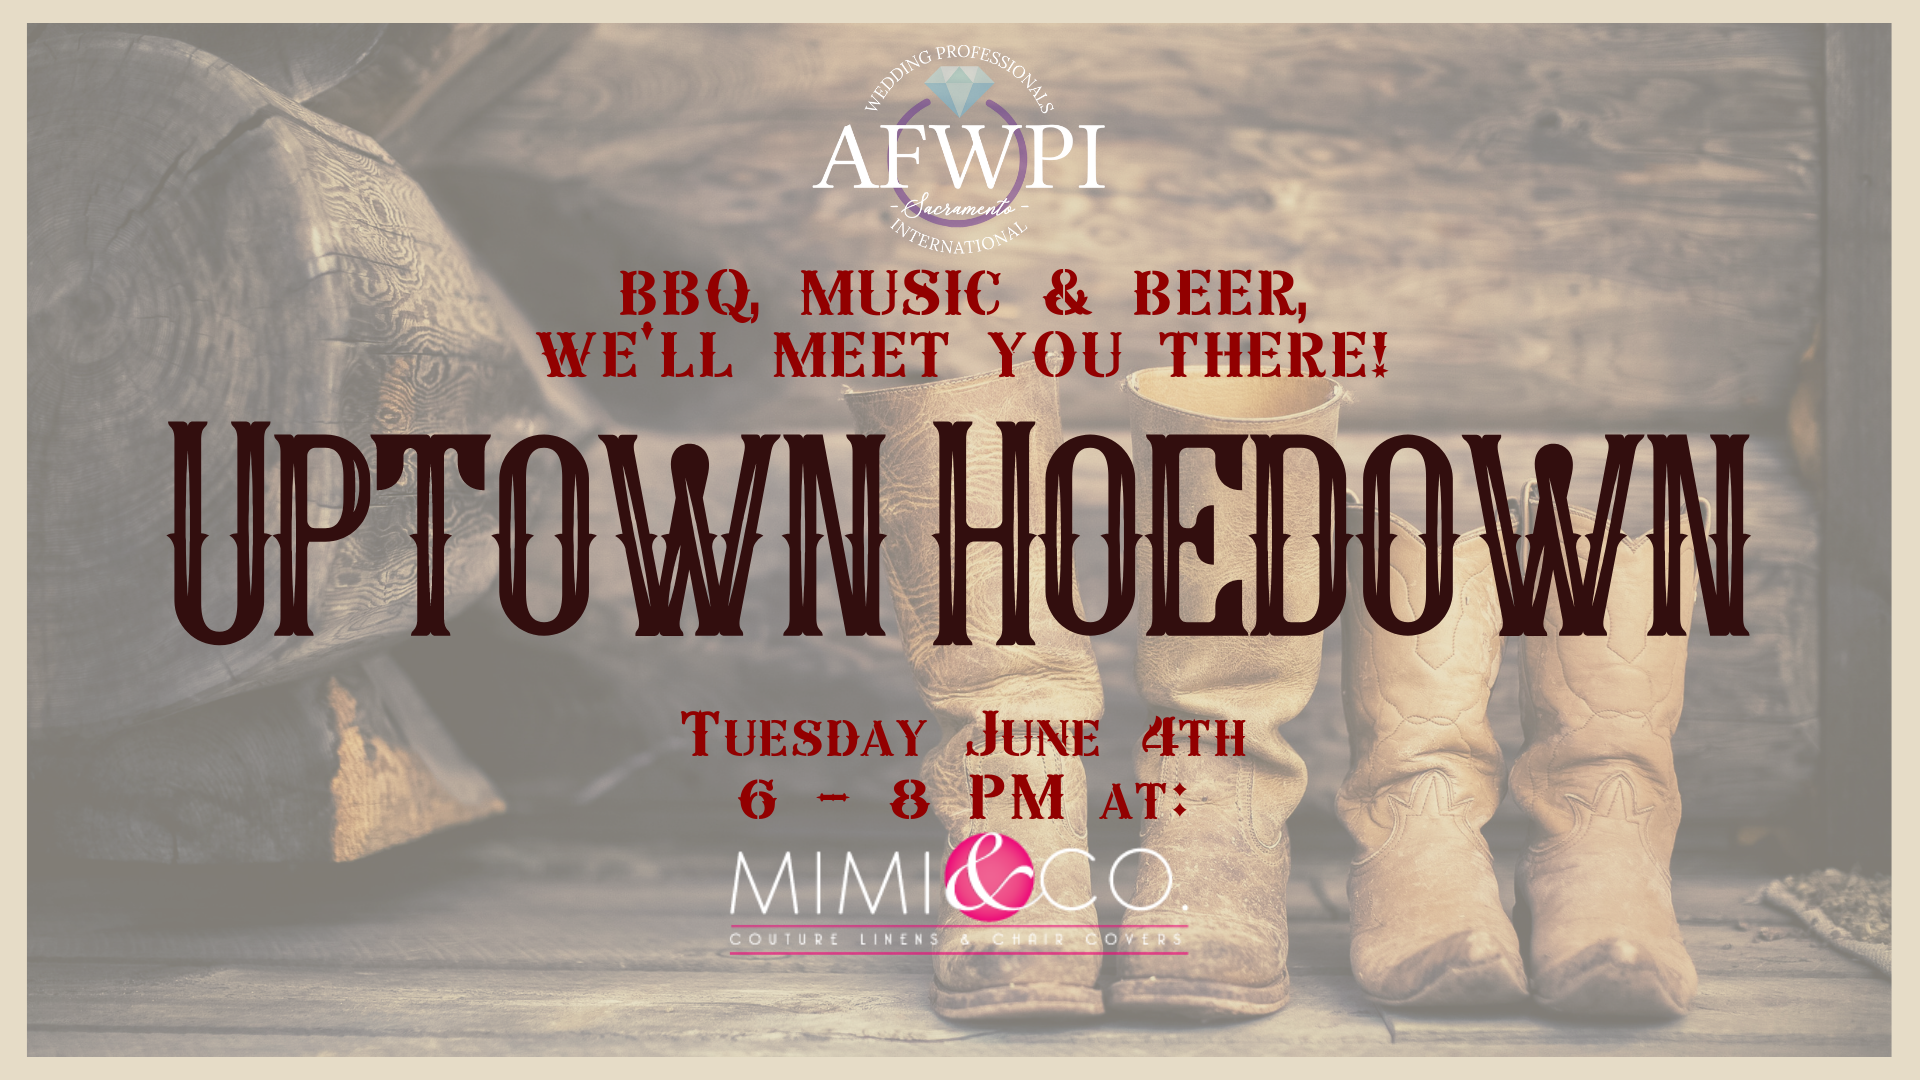 Uptown Hoedown wedding professional networking mixer